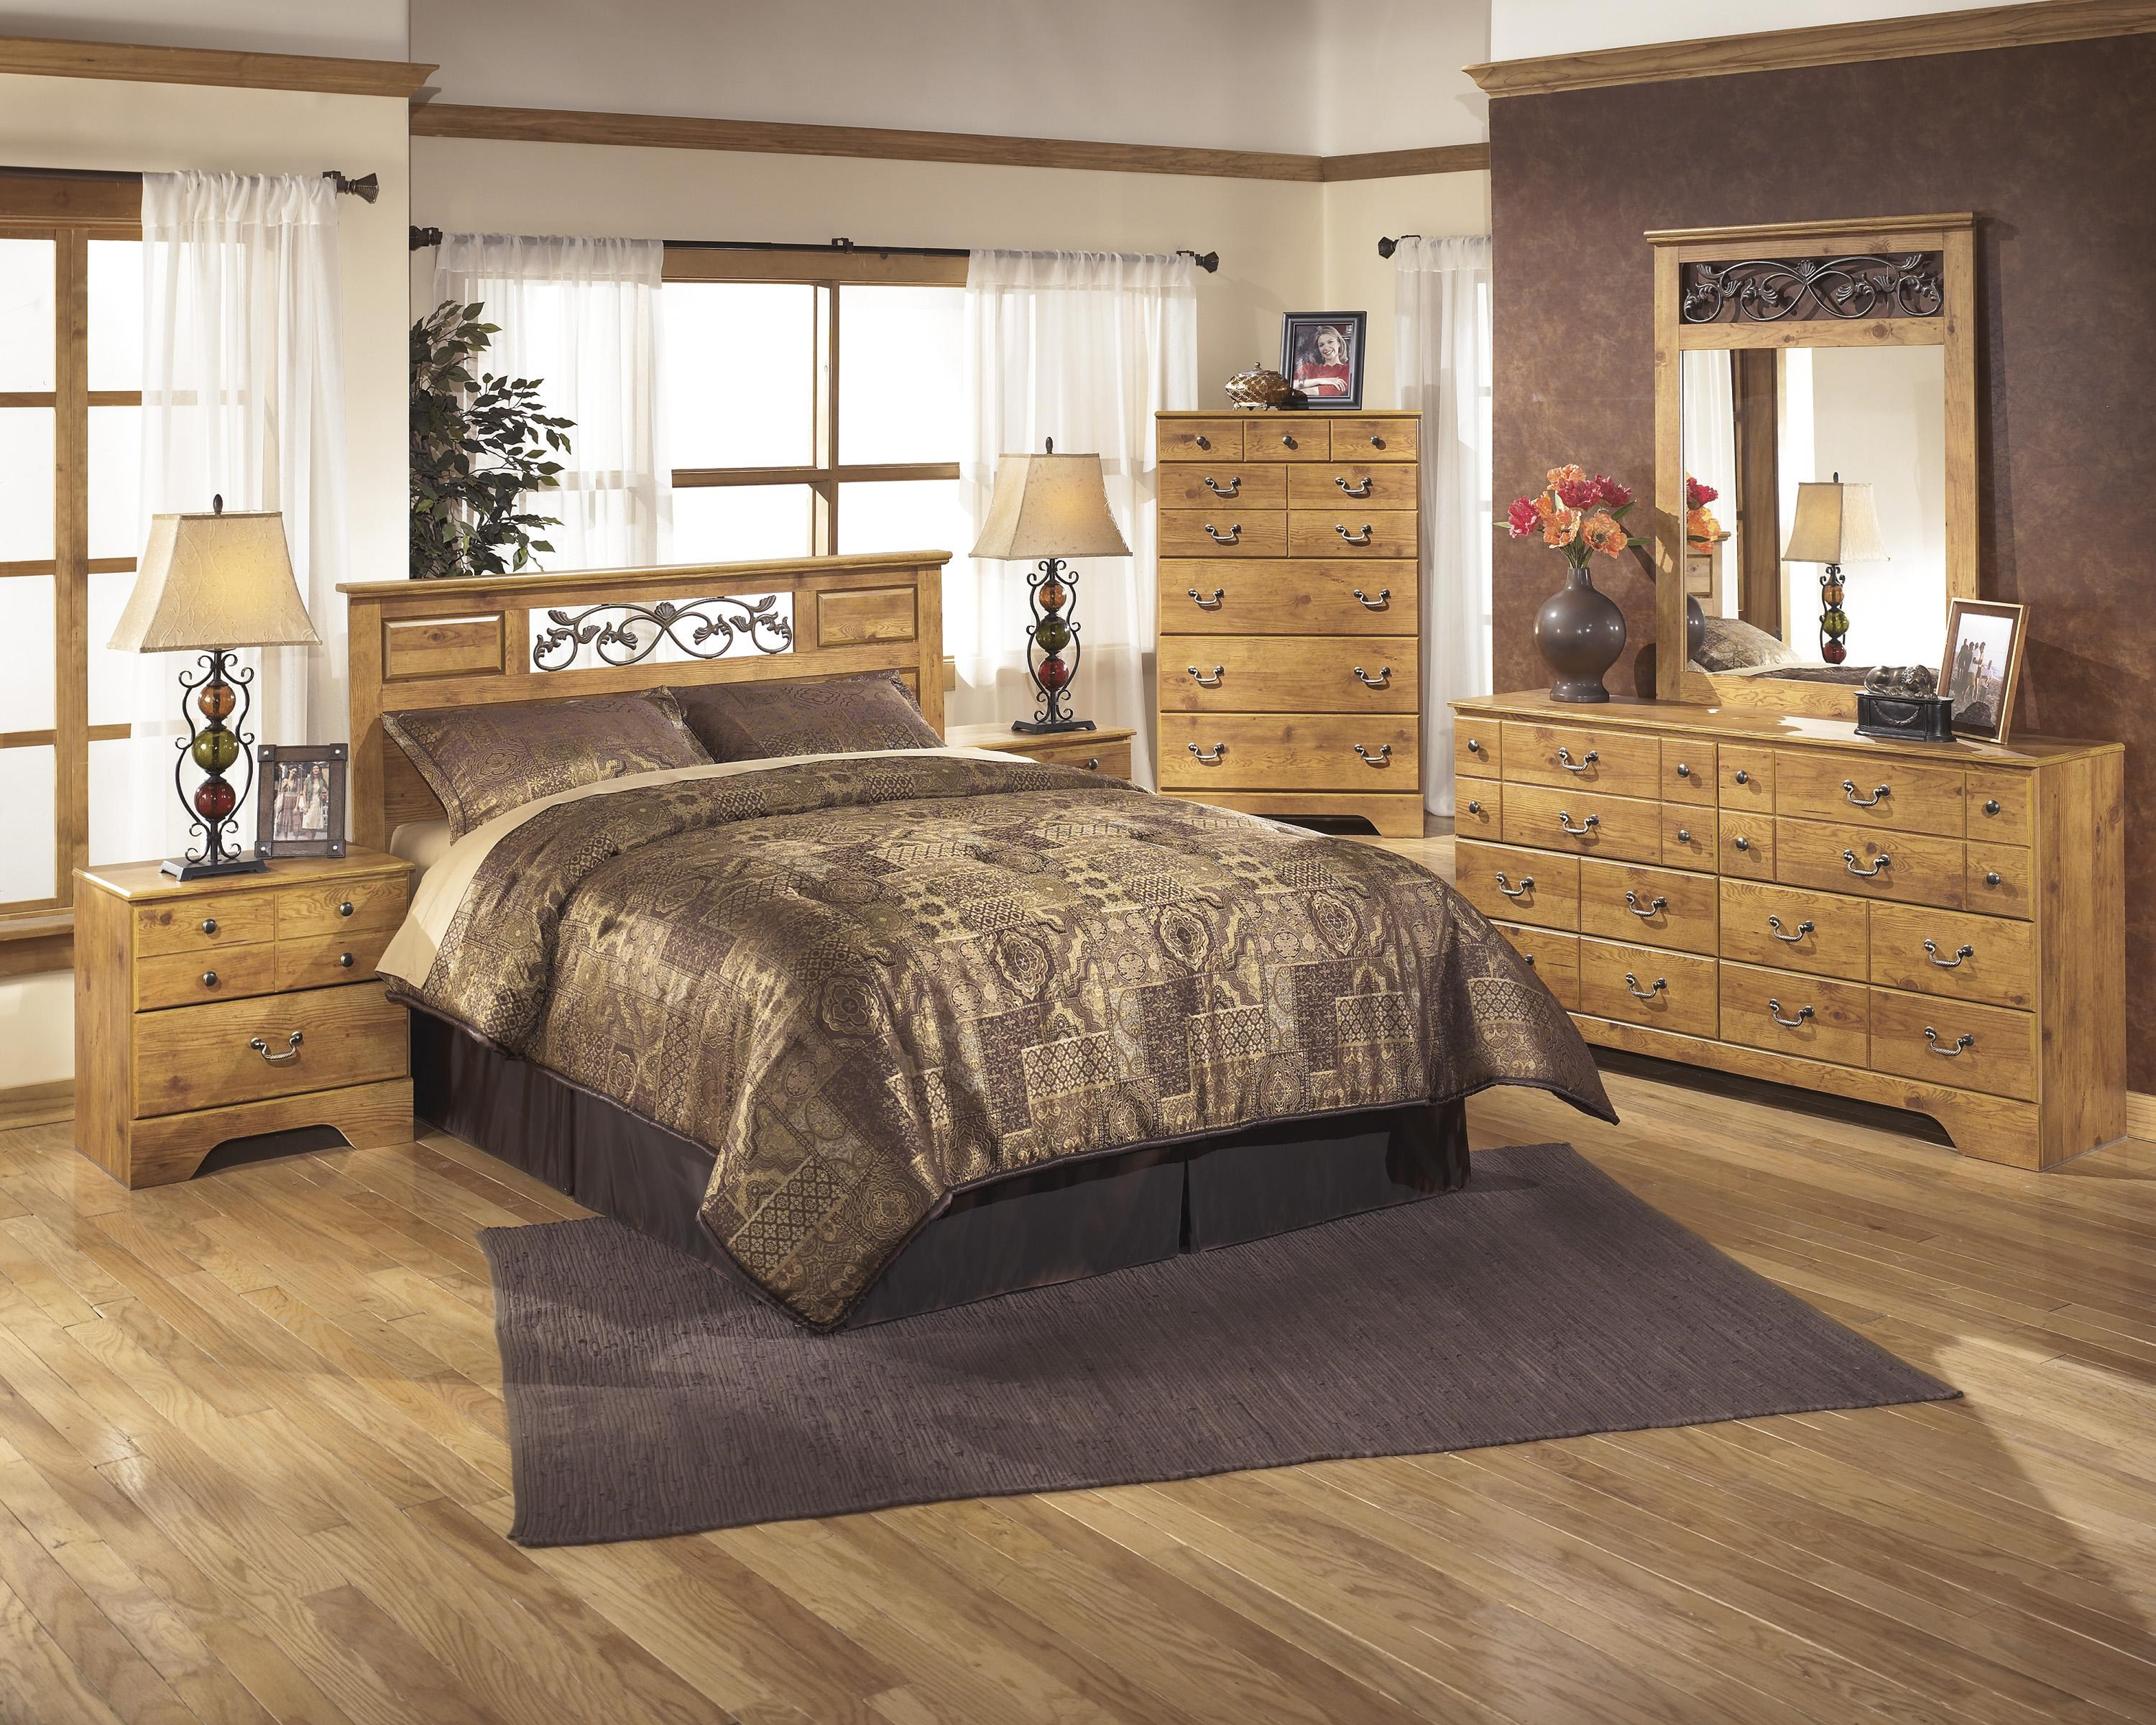 Signature Design by Ashley Bittersweet Full/Queen Bedroom Group - Furniture Fair - North ...